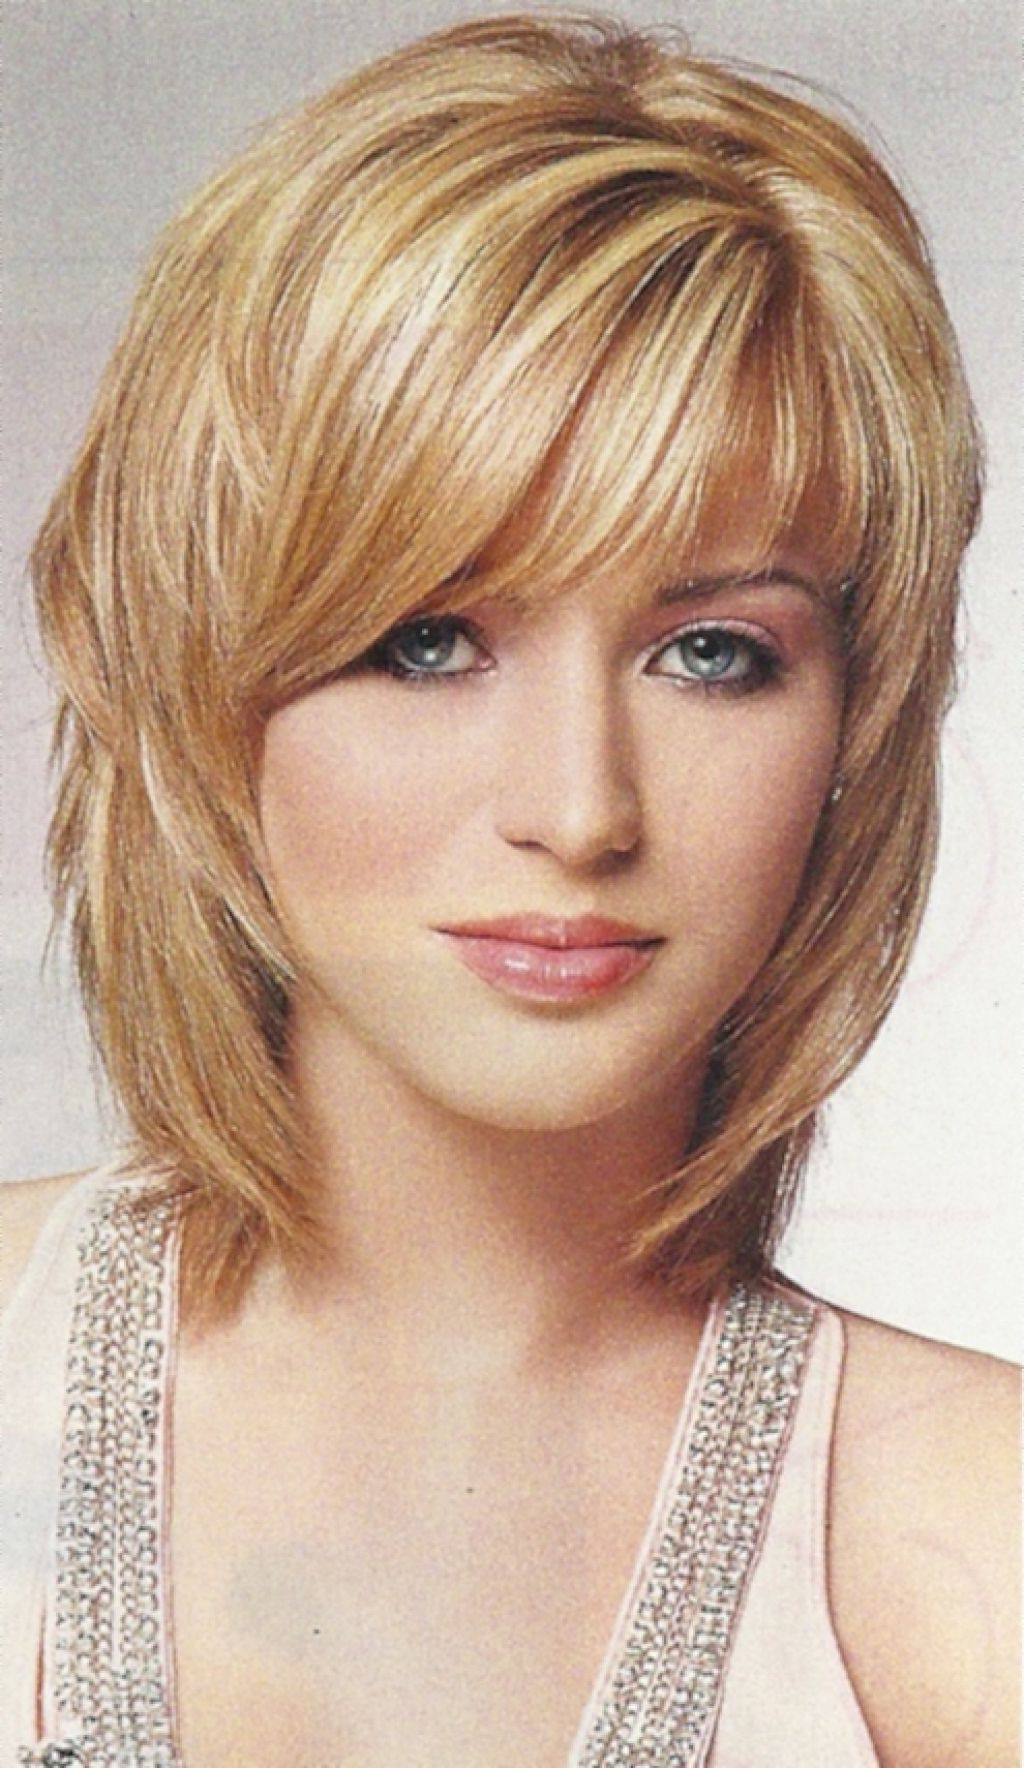 Cute Medium Short Hairstyles – Hairstyle For Women & Man Within Short To Medium Shaggy Hairstyles (View 17 of 25)